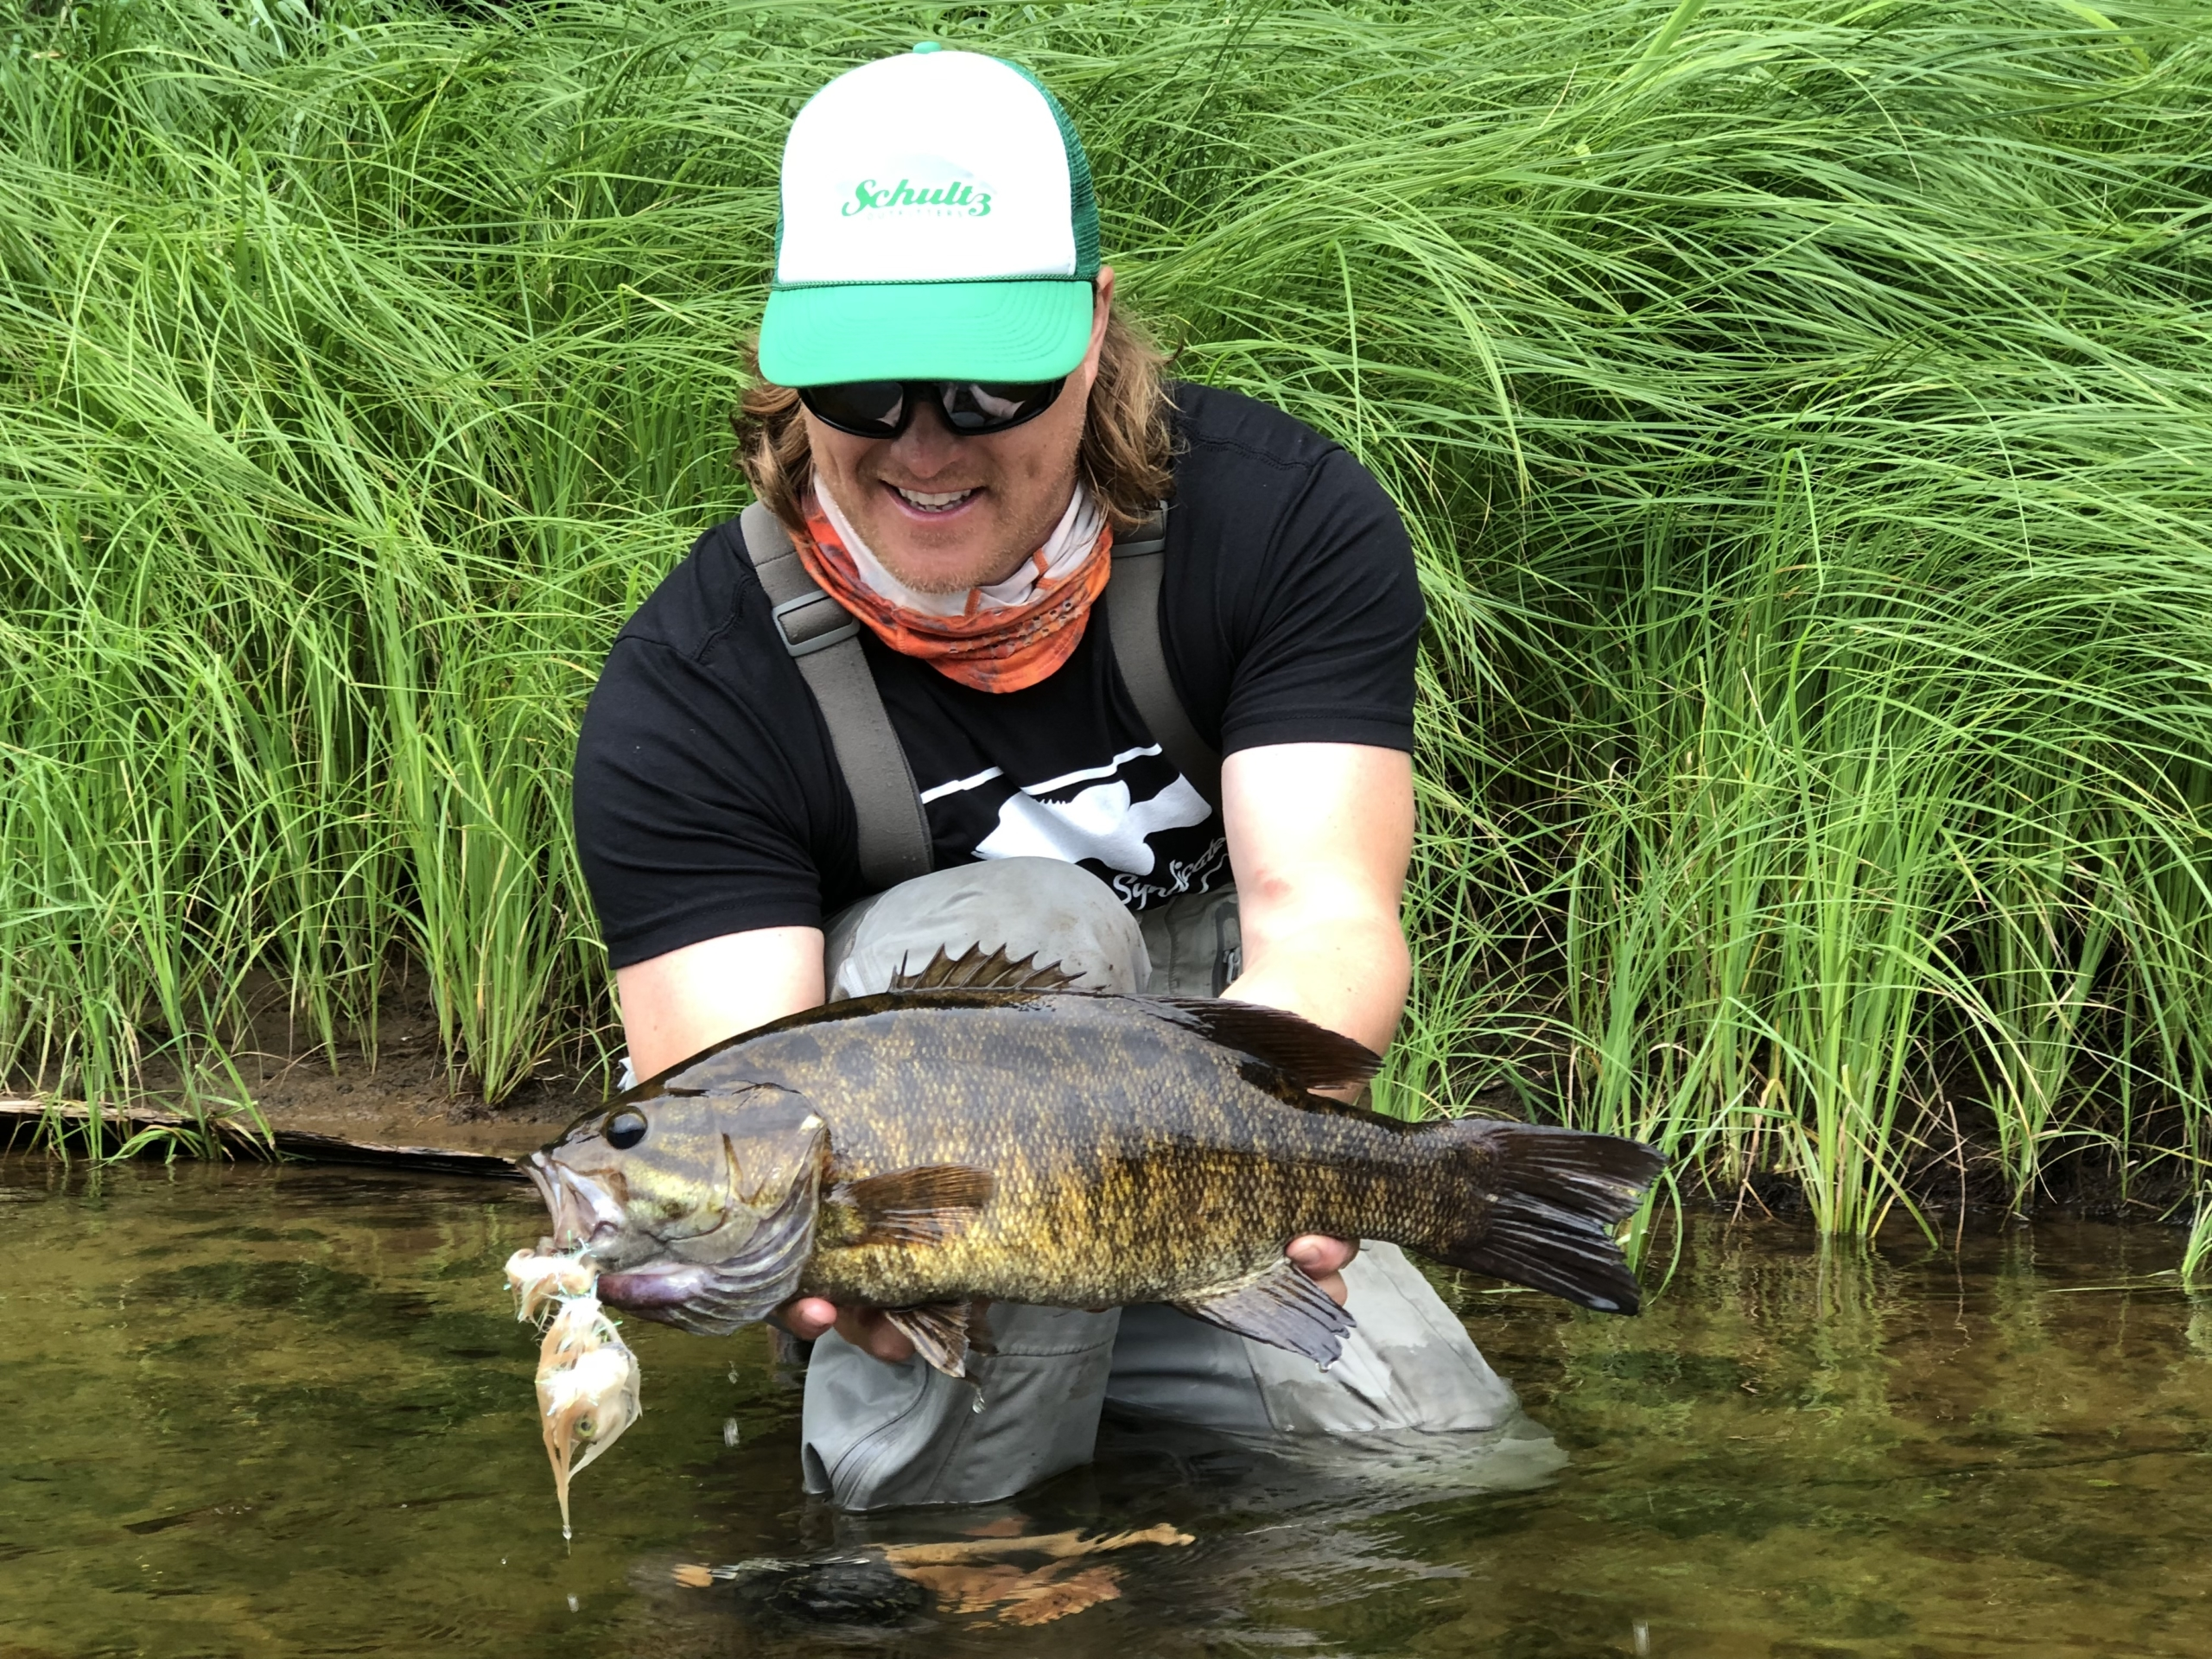 mike_schulz_smallmouth_bass